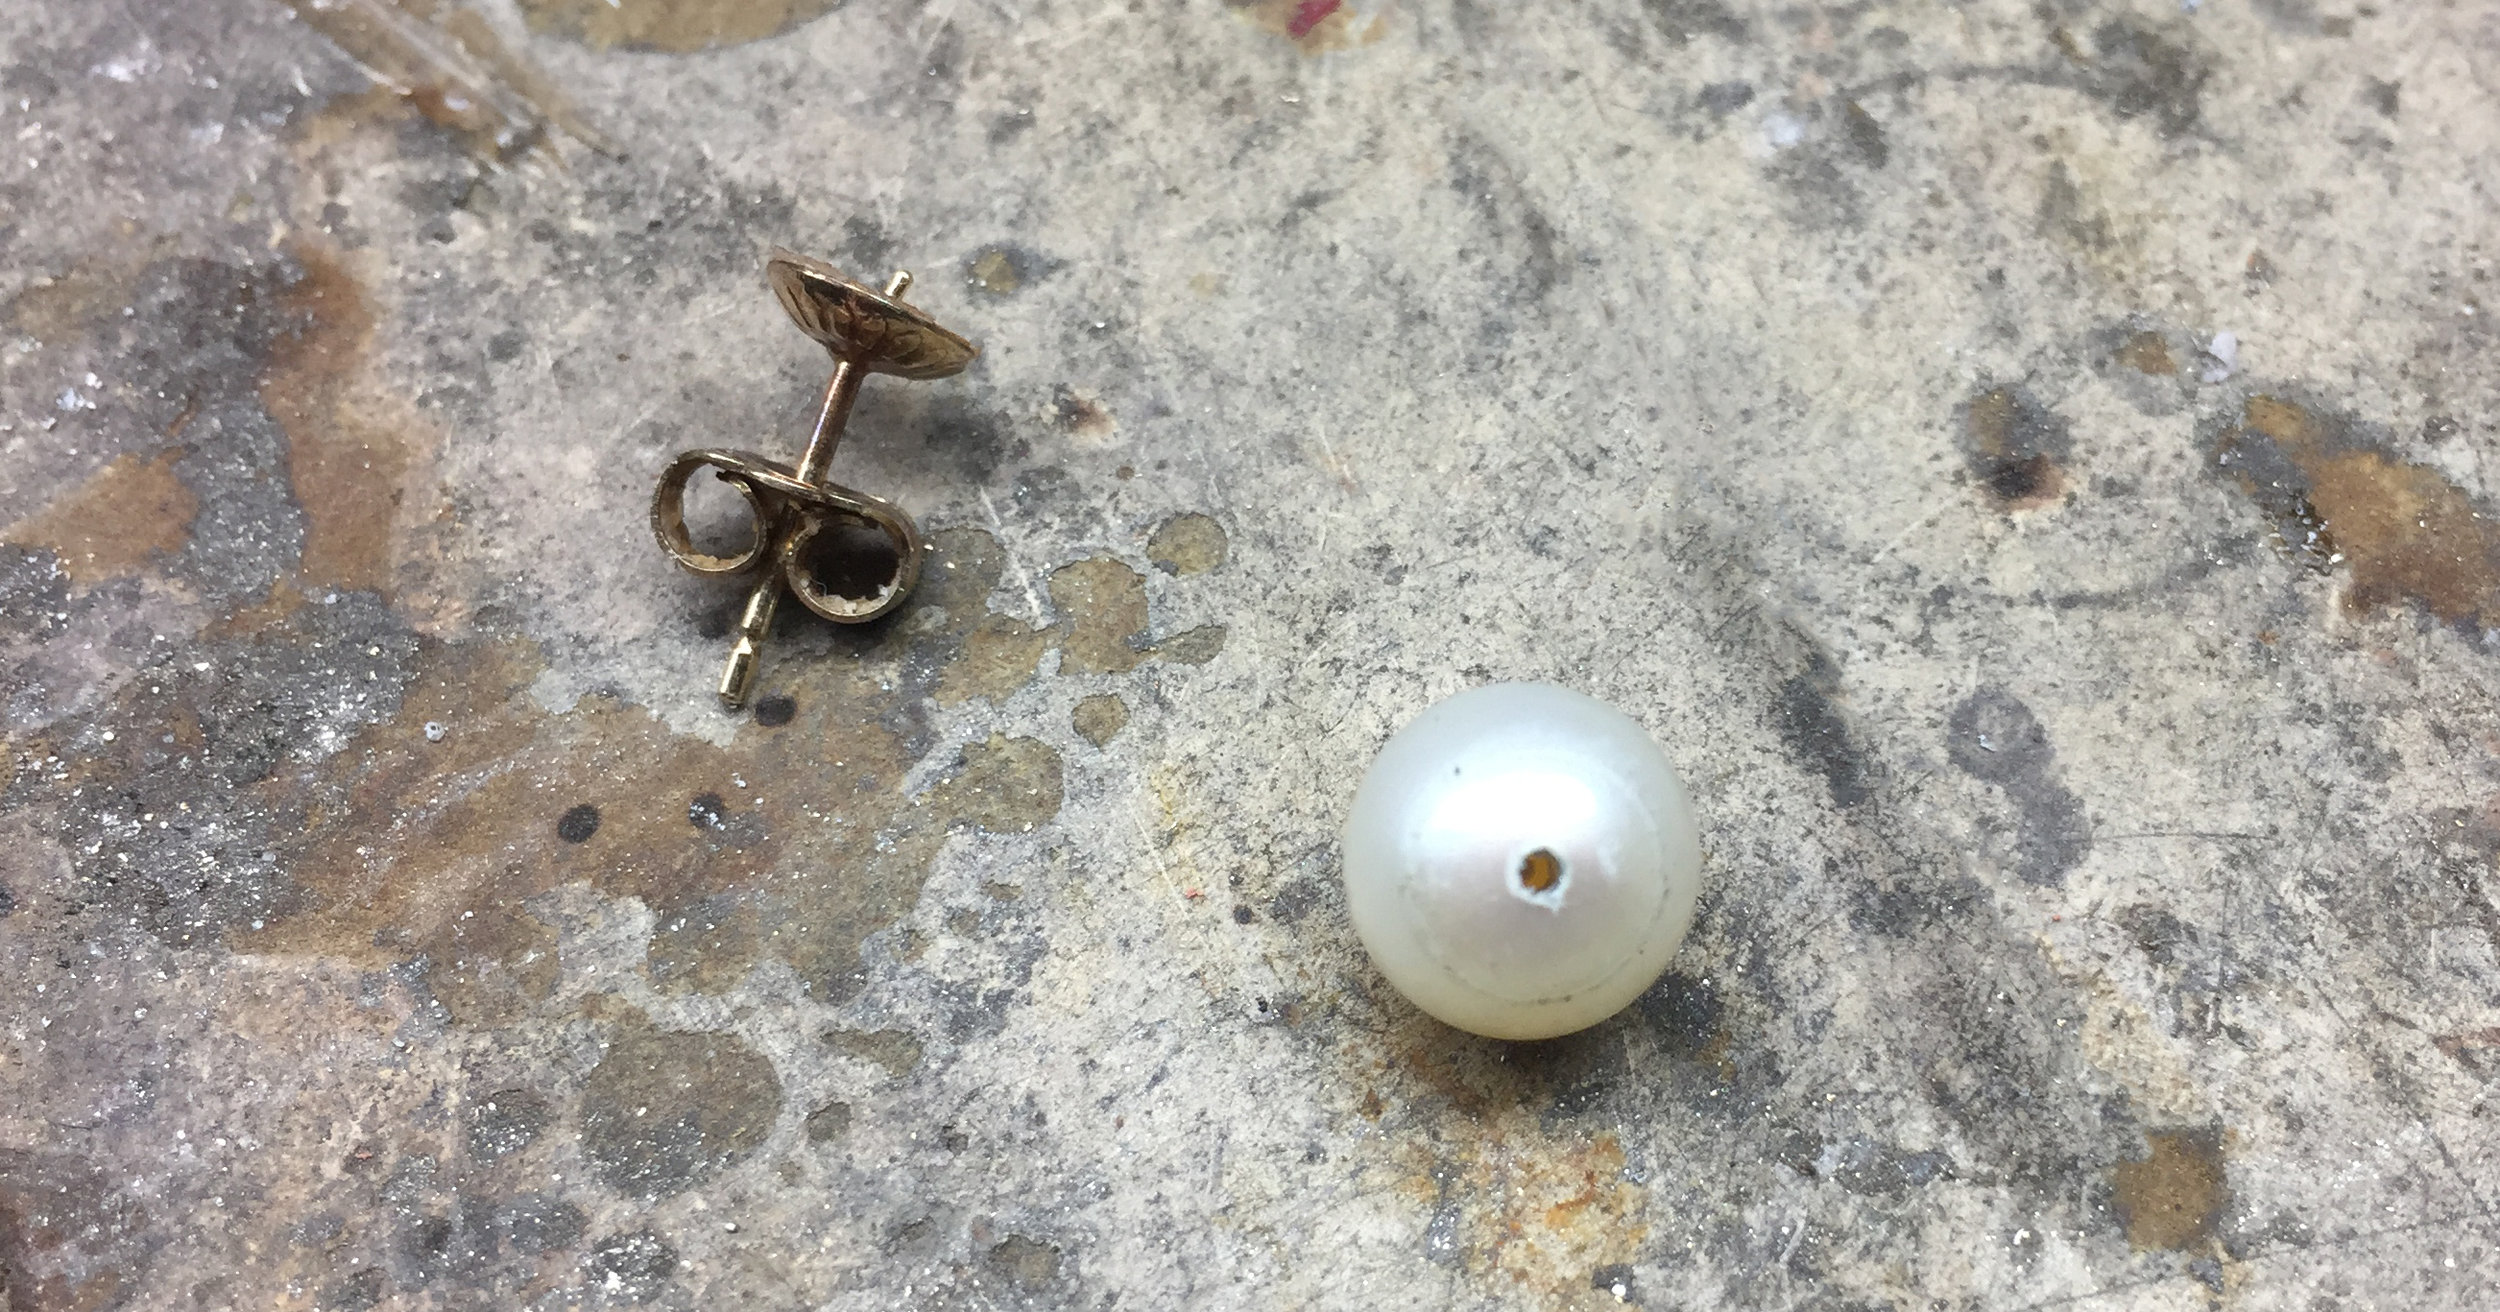 The pearl that would not stay on the post.